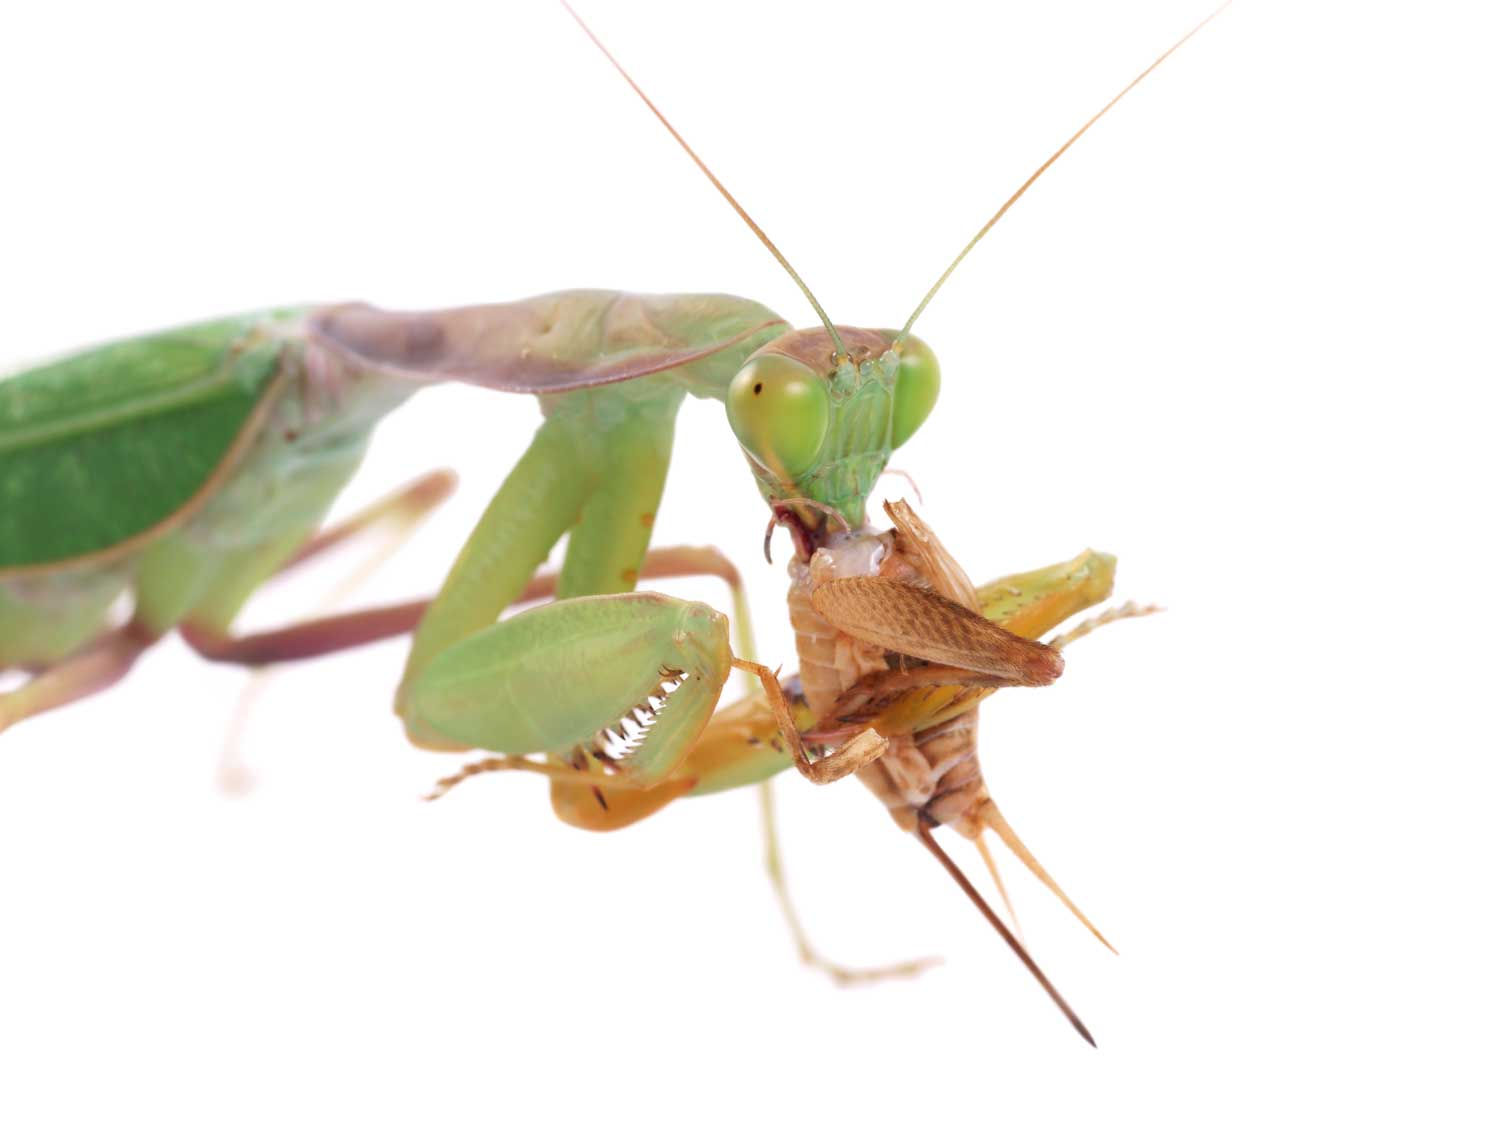 An unlucky cricket being eaten by a Mantis